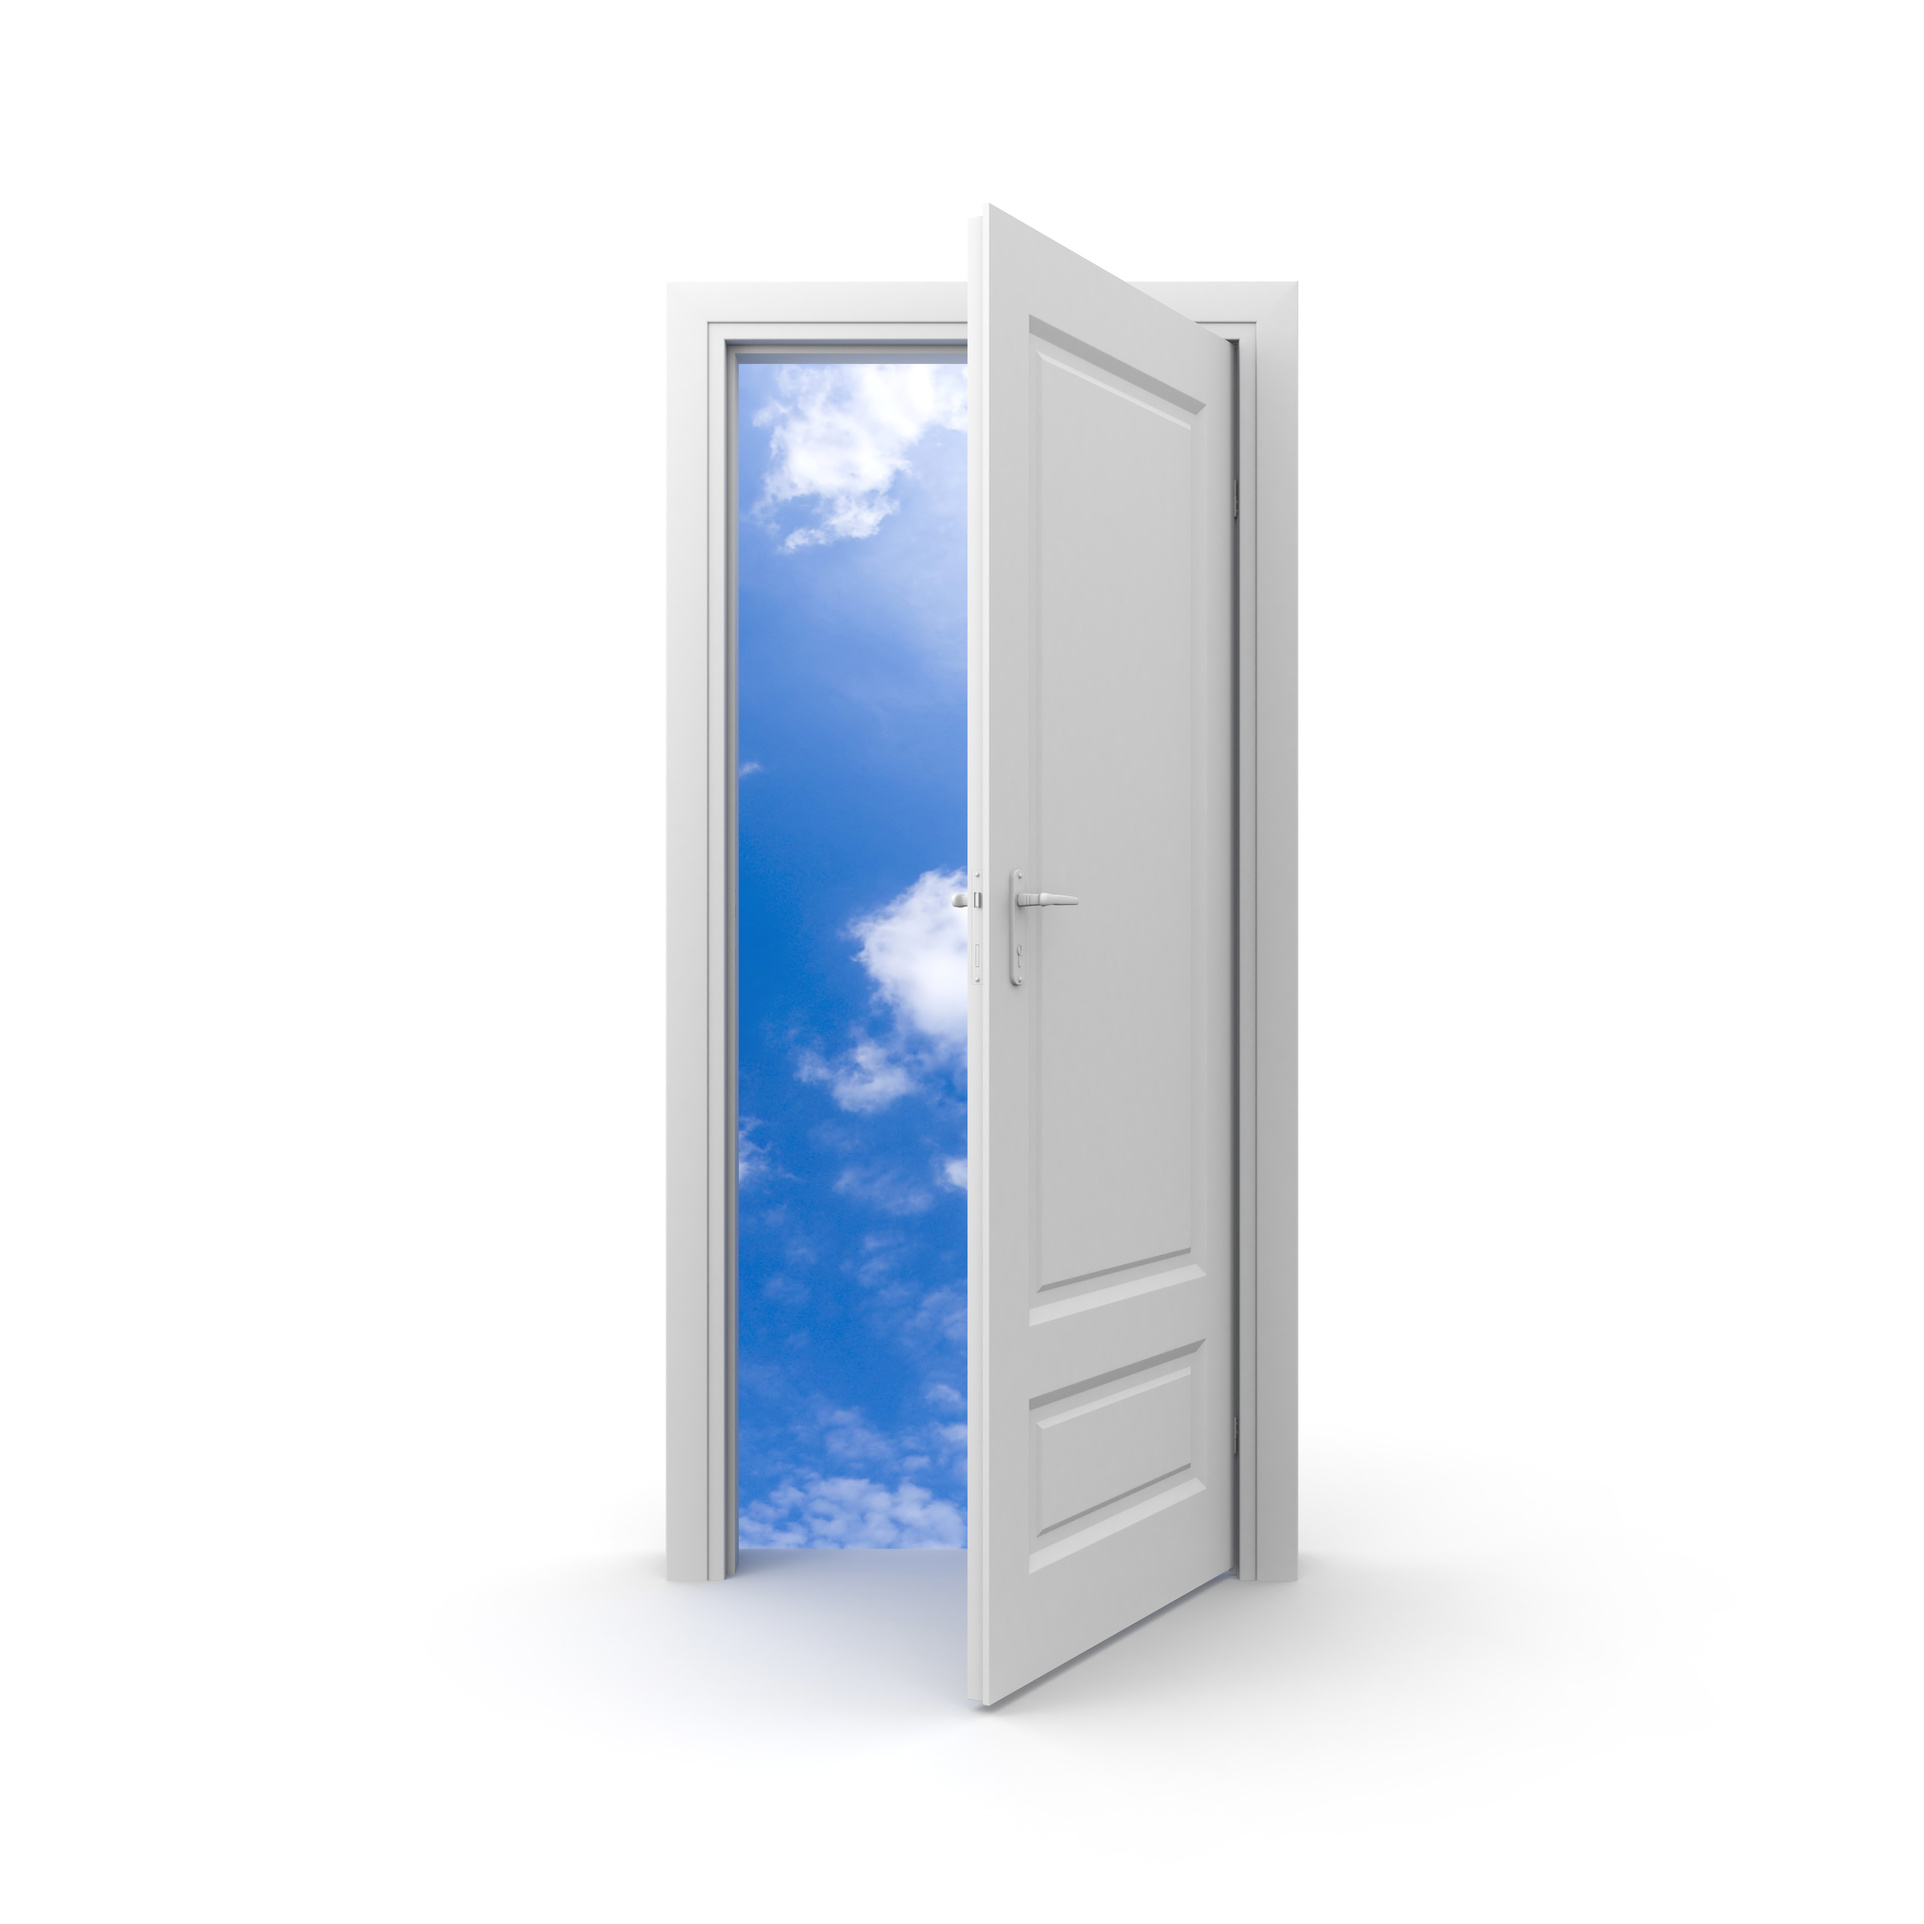 Conceptual image isolated on white  sc 1 th 225 & Blog: Open the Social Door | Effective Perspectives